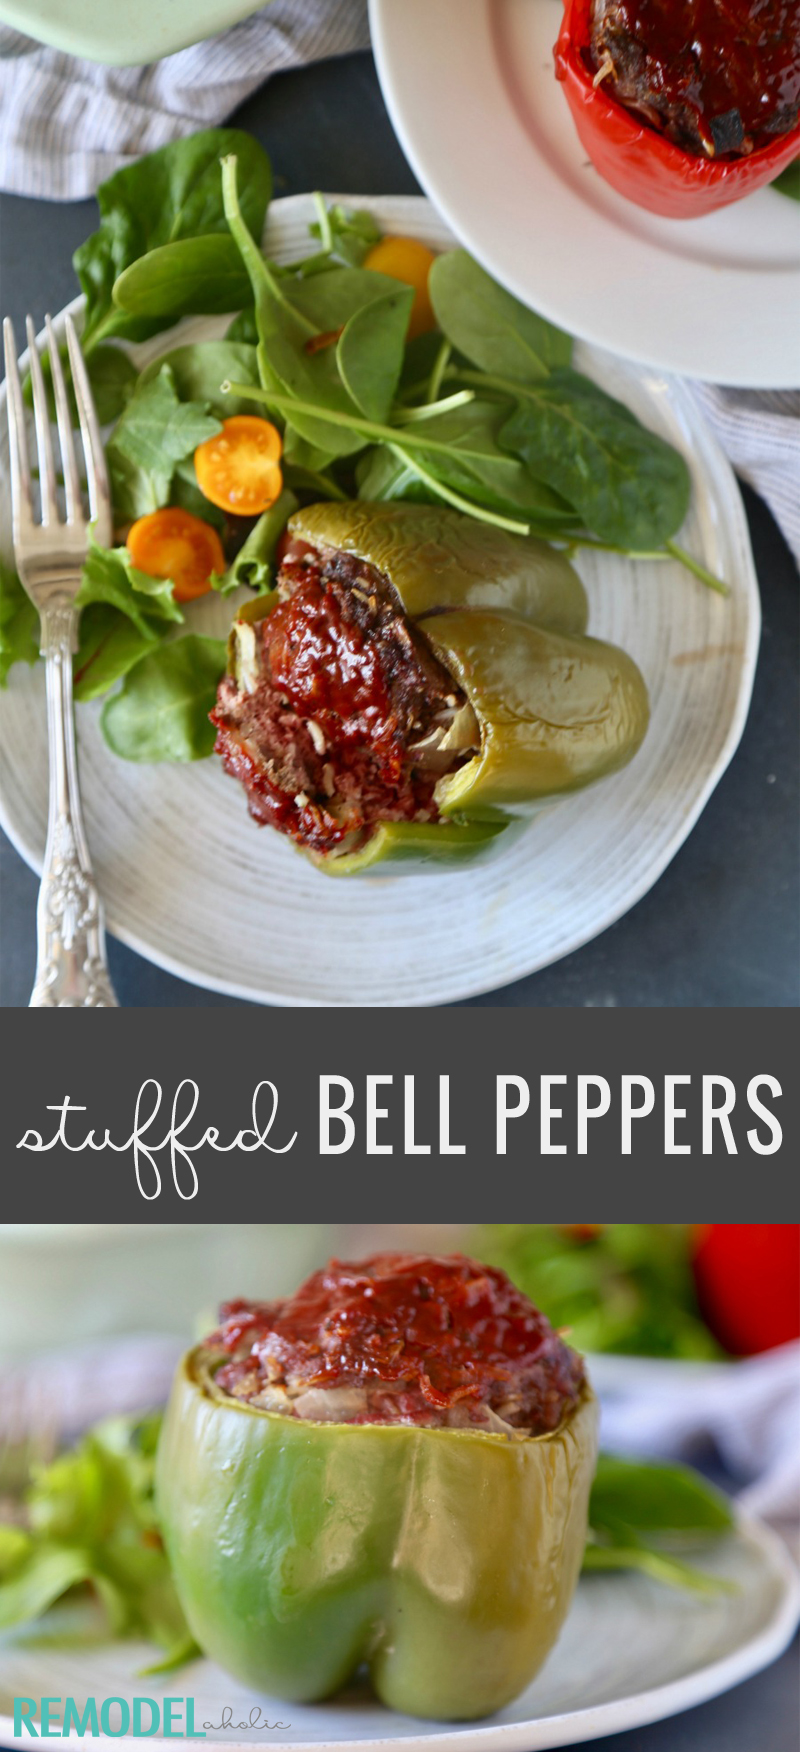 Stuffed Bell Peppers - A delicious stuffed peppers recipe to try tonight. Stuffed Peppers by Remodelaholic.com